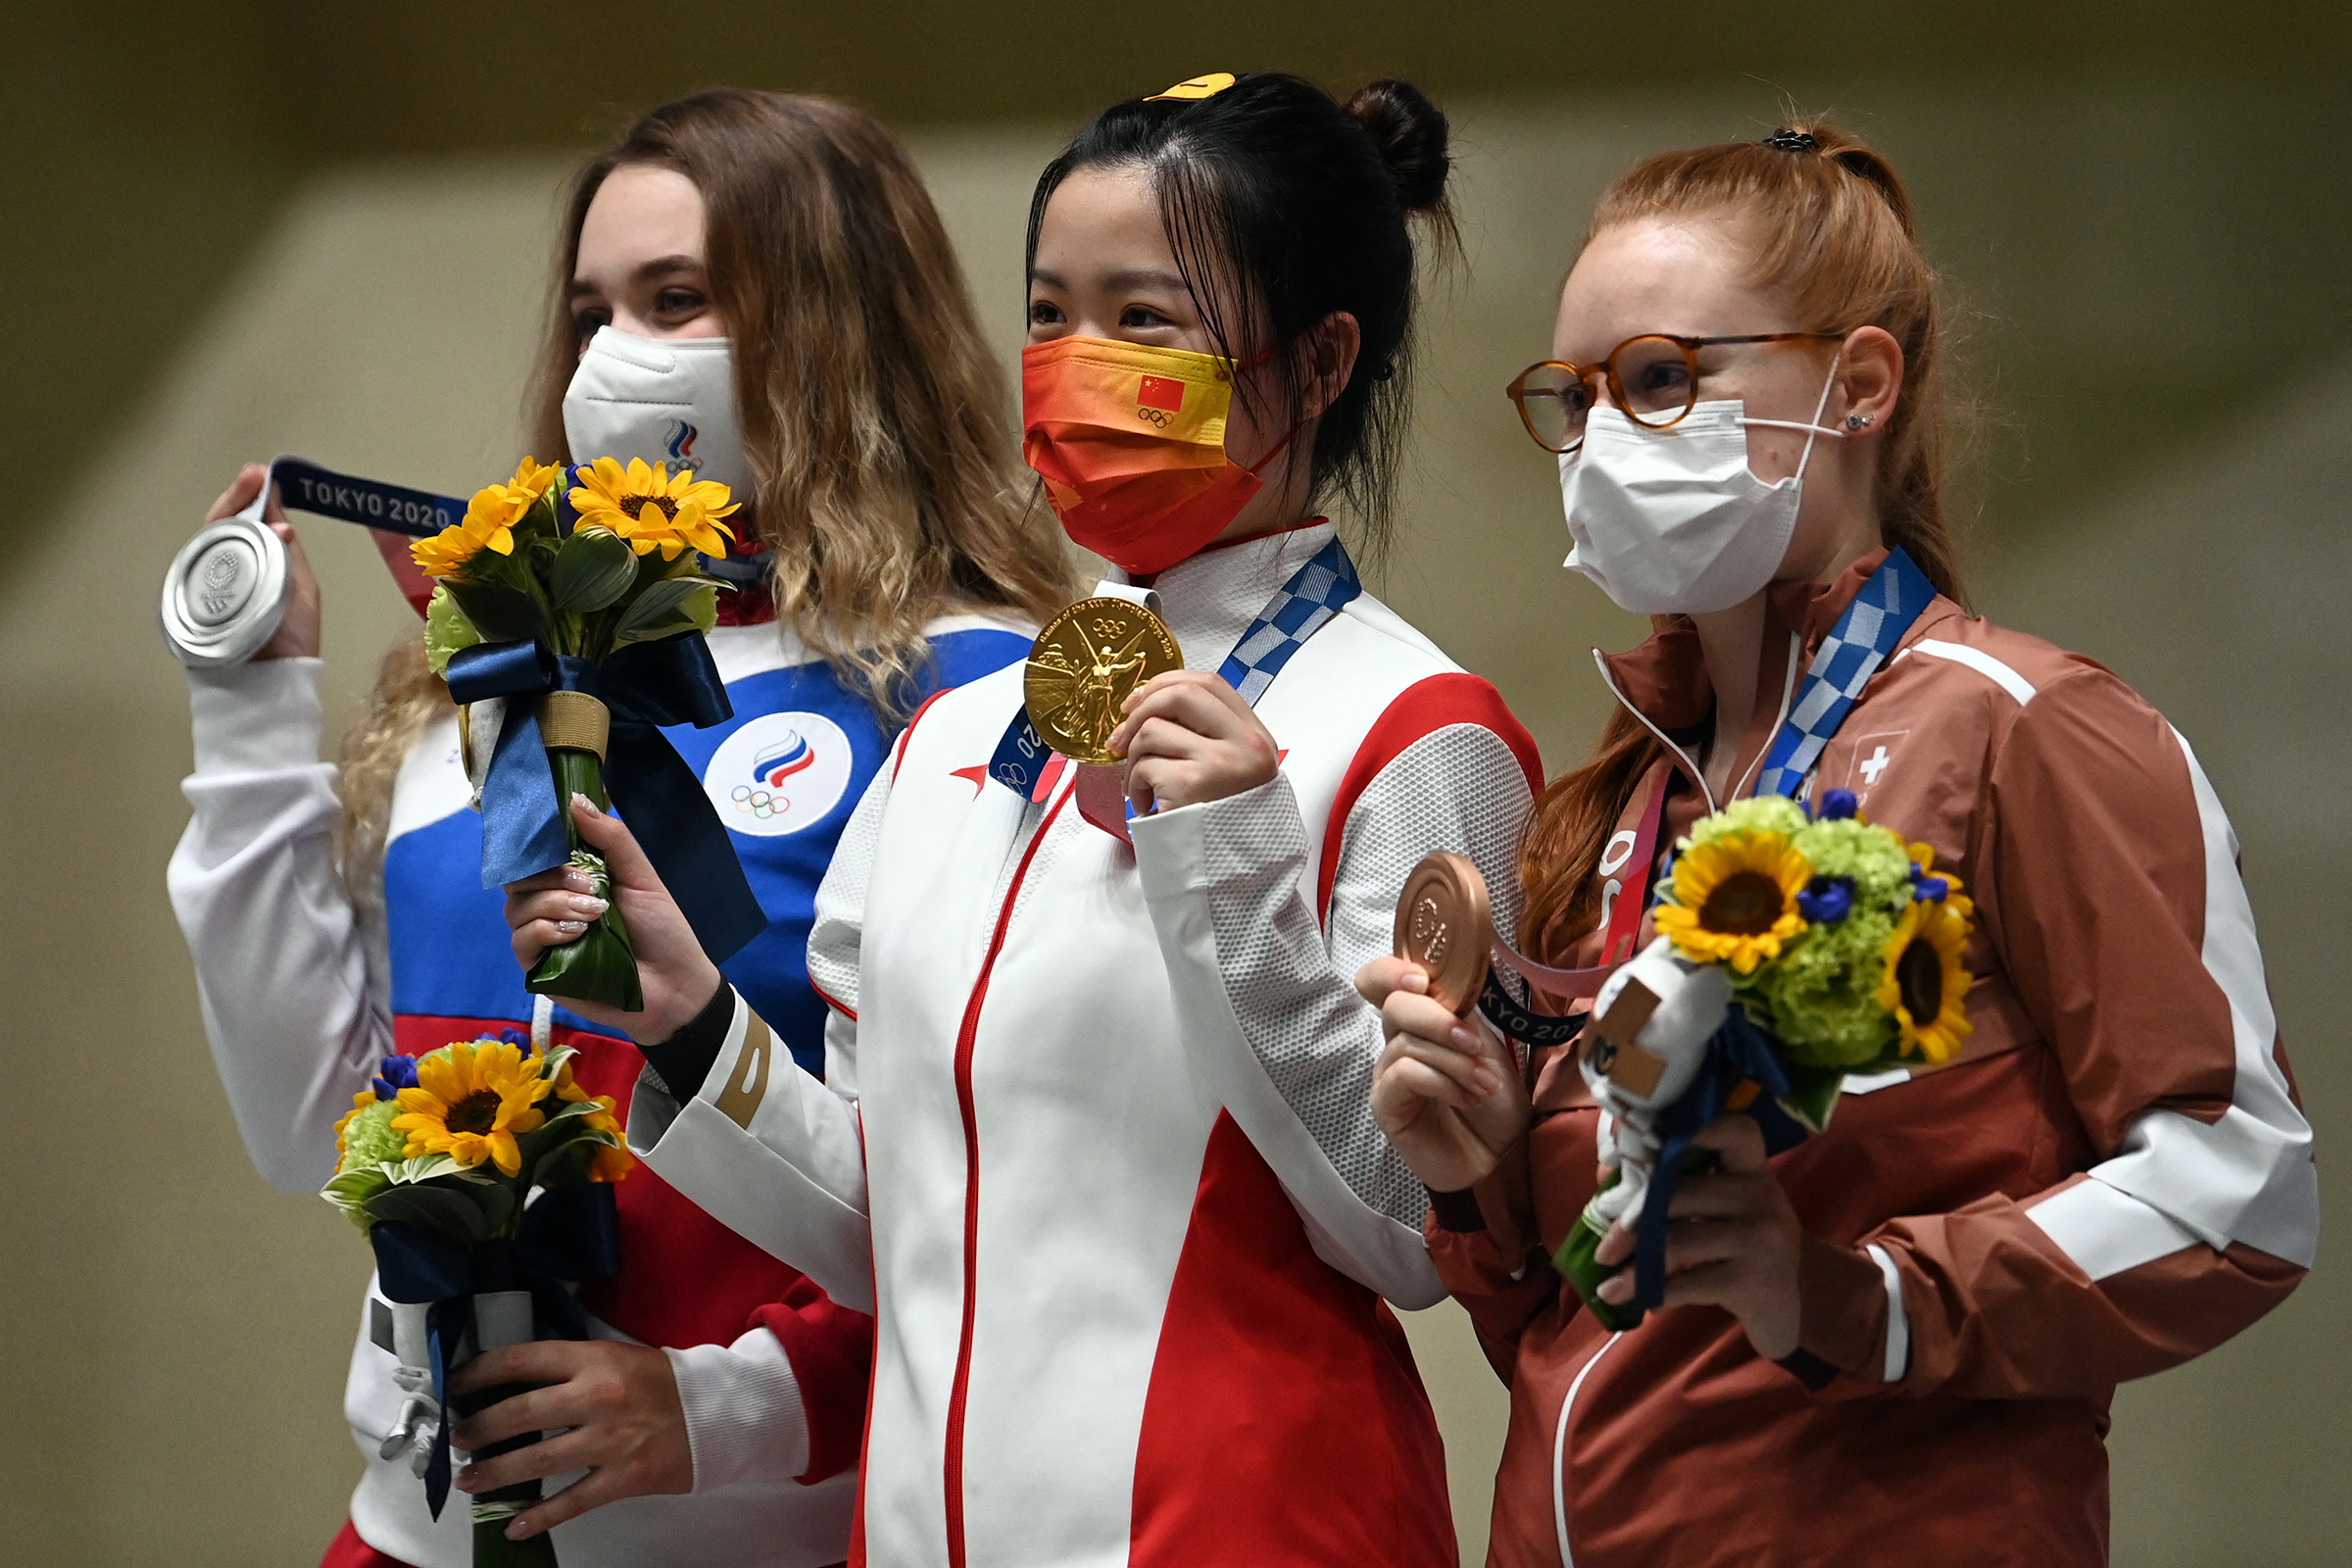 Russia's Anastasiia Galashina, China's Yang Qian and Switzerland's Nina Christen pose with their medals after the women's 10m air rifle final on July 24.